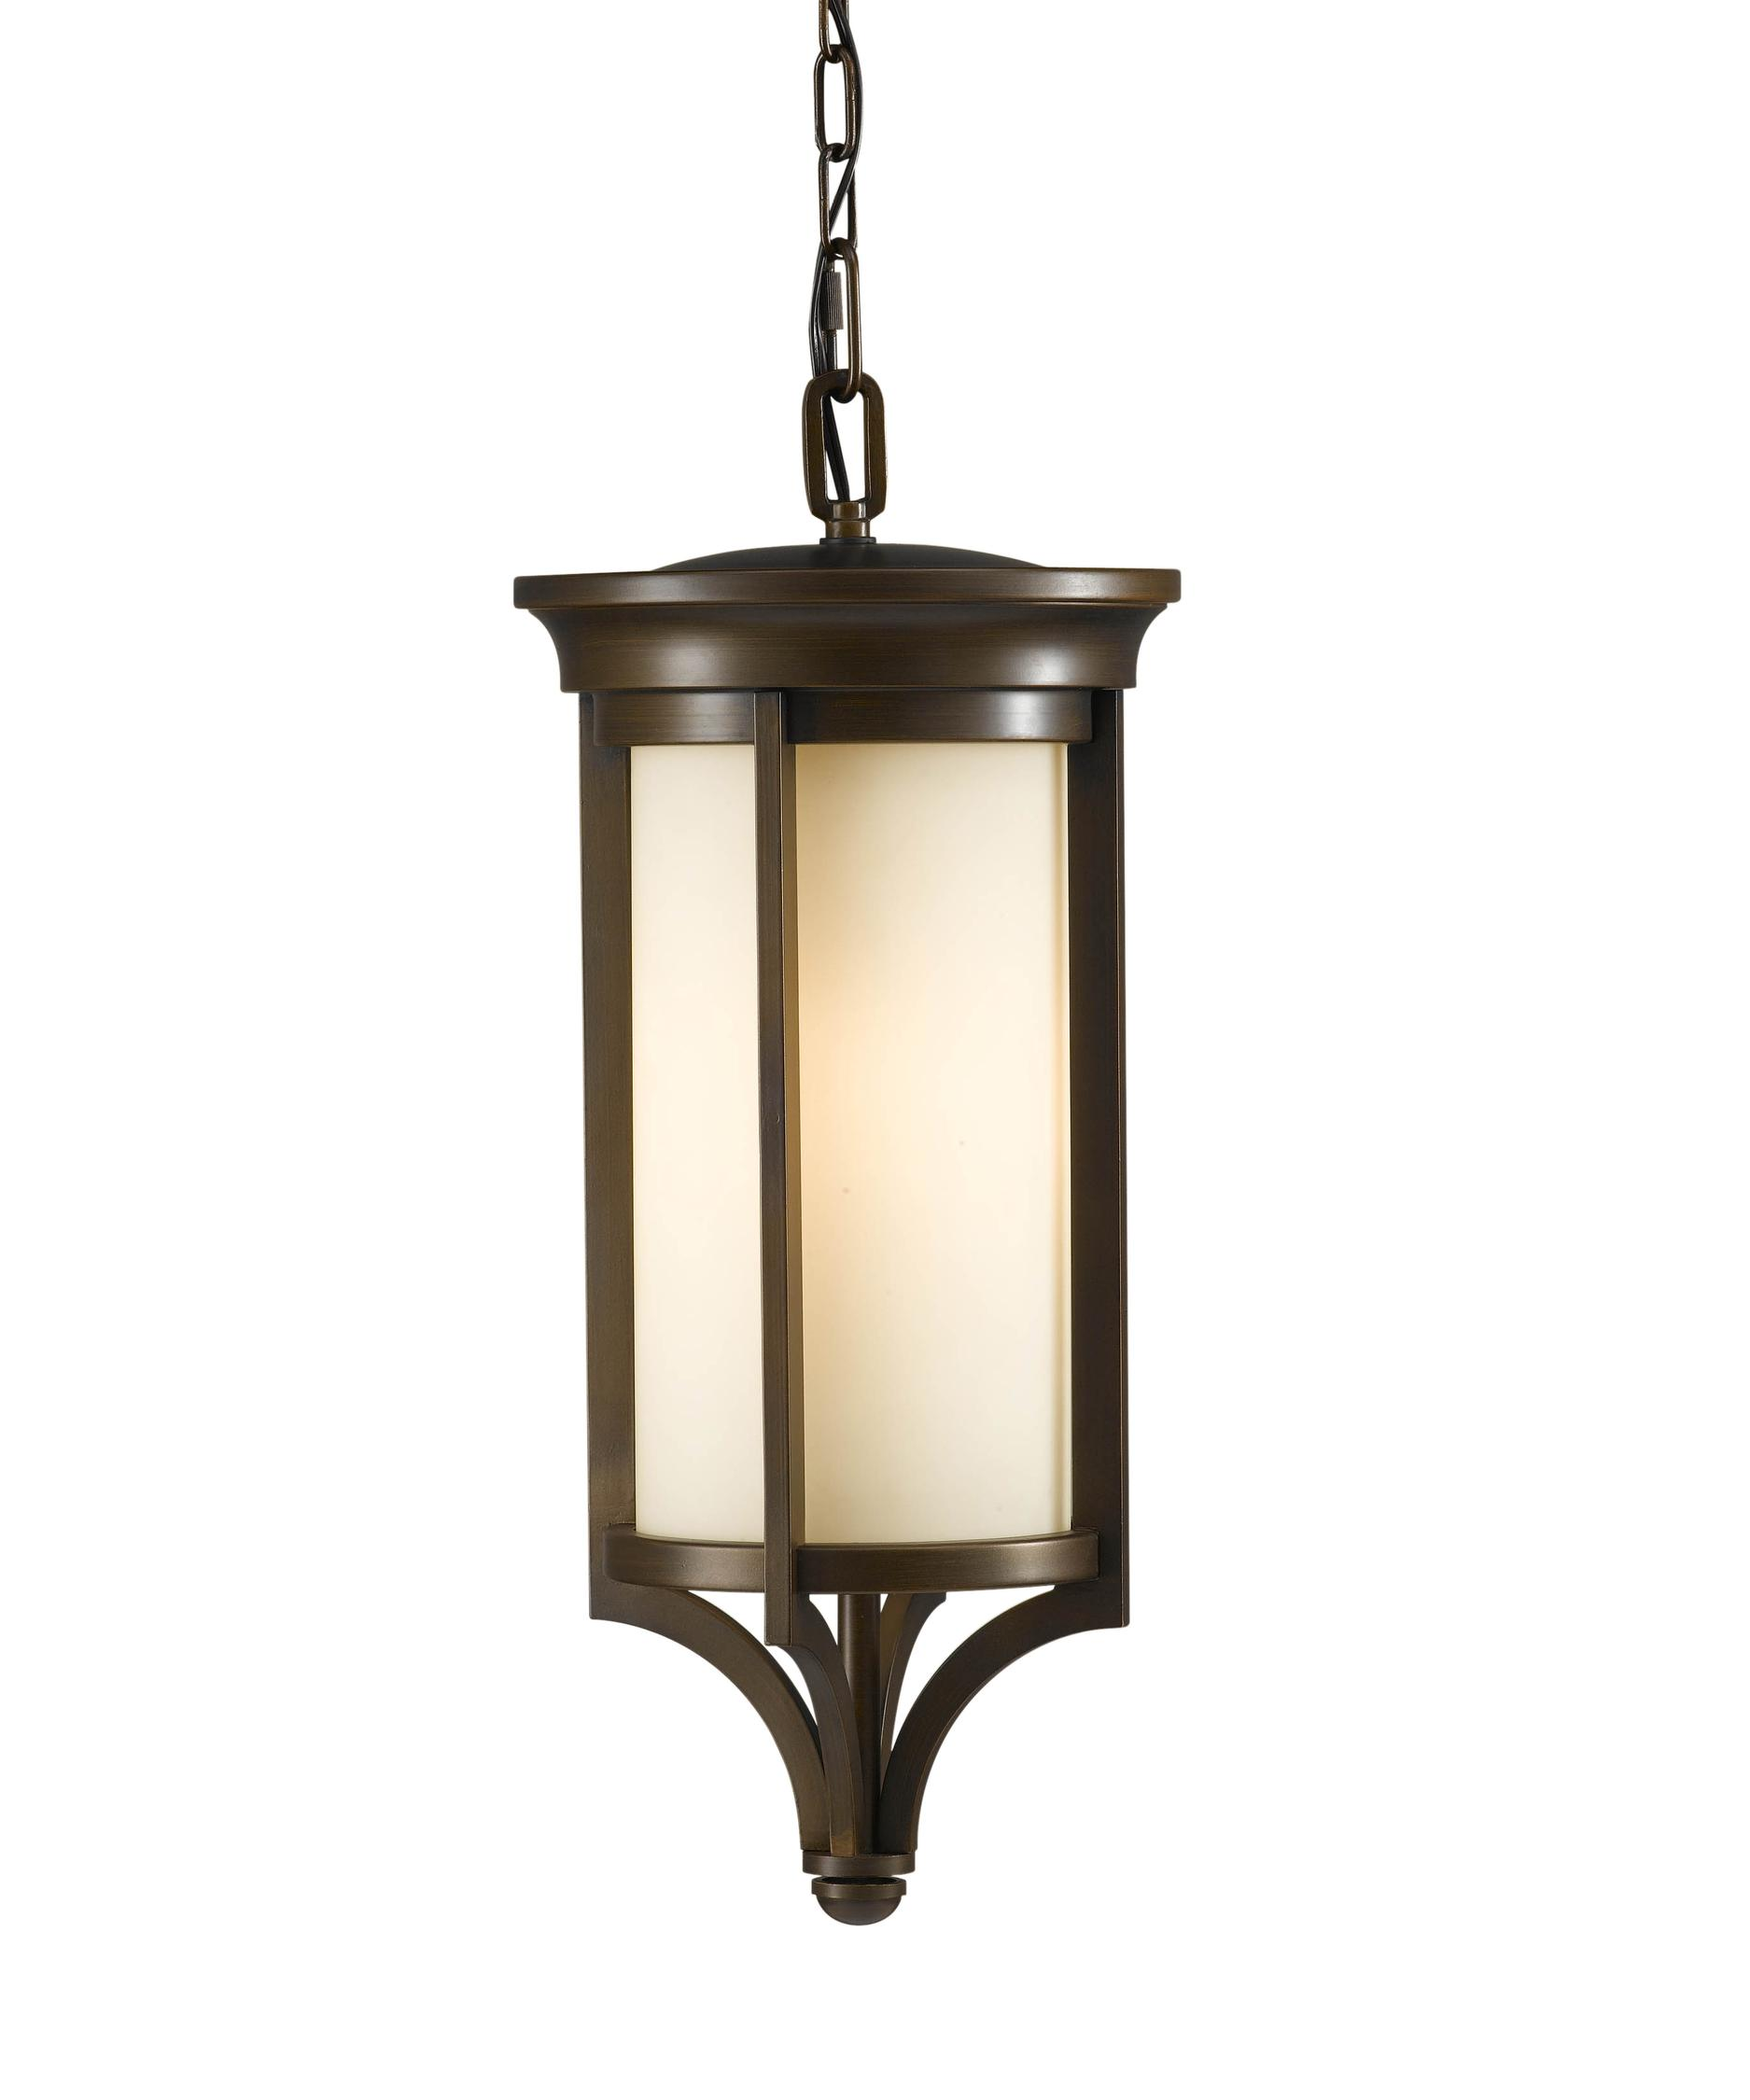 Outdoor hanging lighting - Shown In Heritage Bronze Finish And Cream Etched Glass